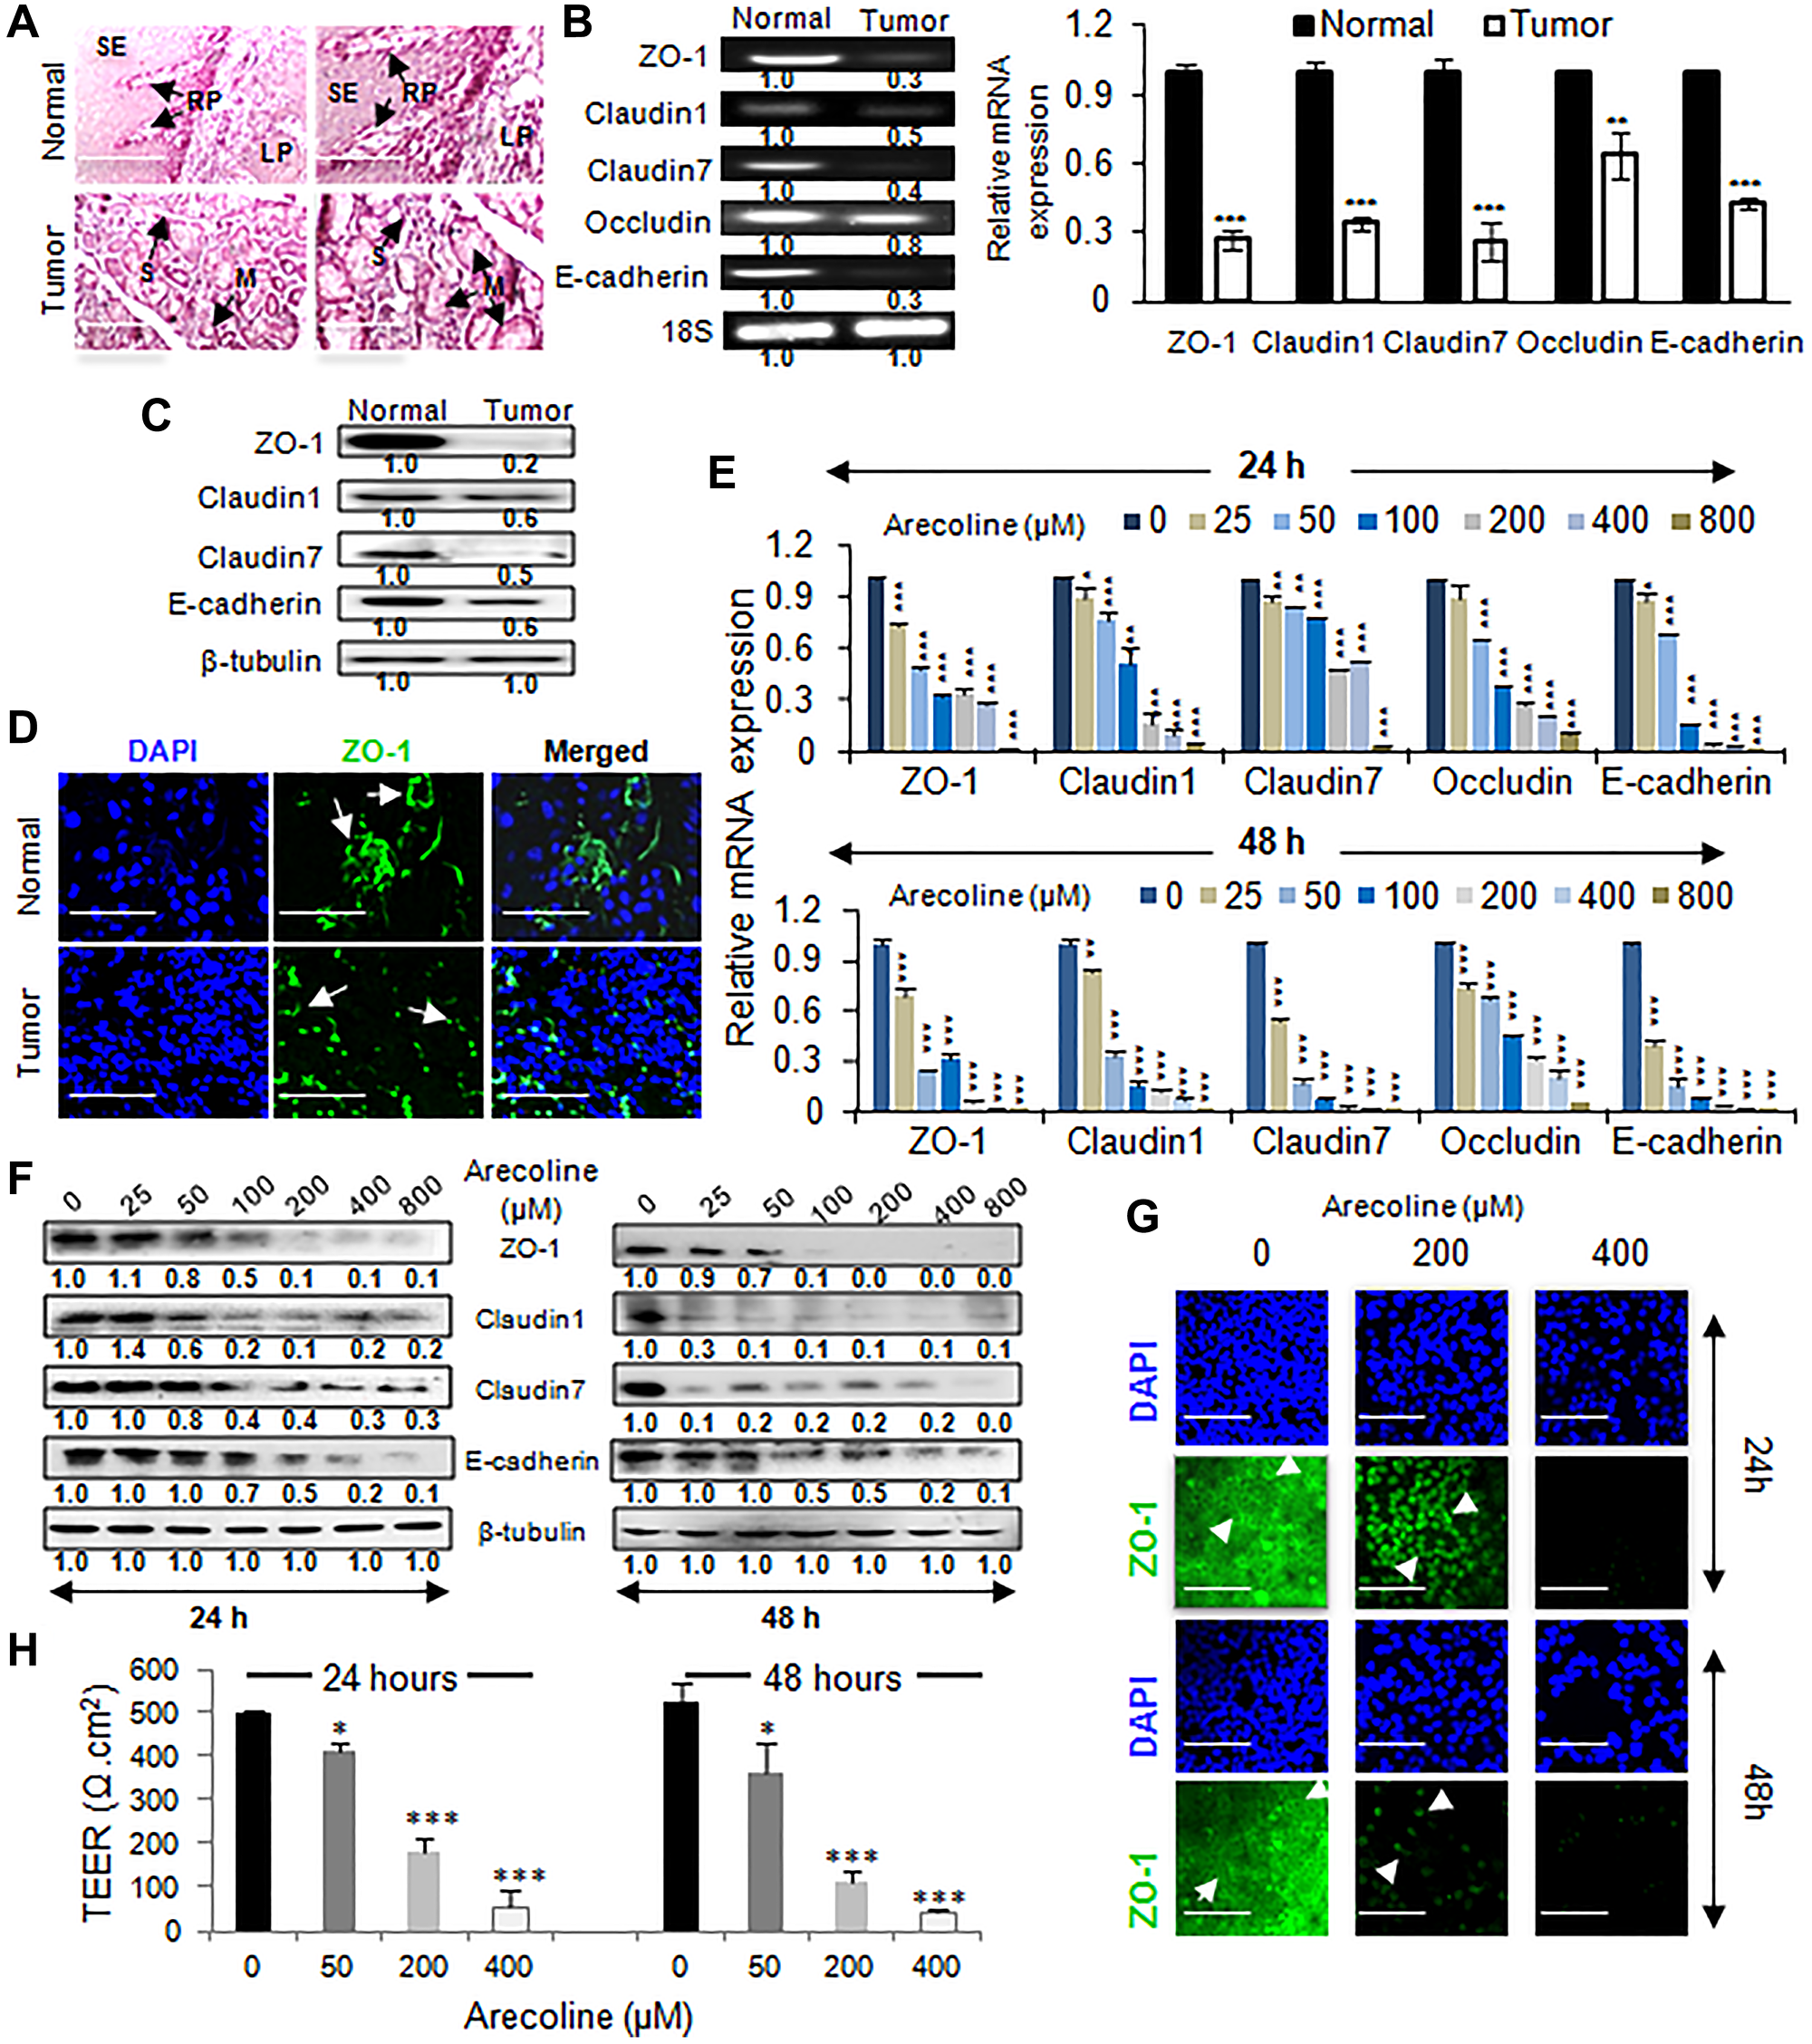 Arecoline disrupts tissue integrity and downregulates the expression of tight junction proteins in HNSCC.